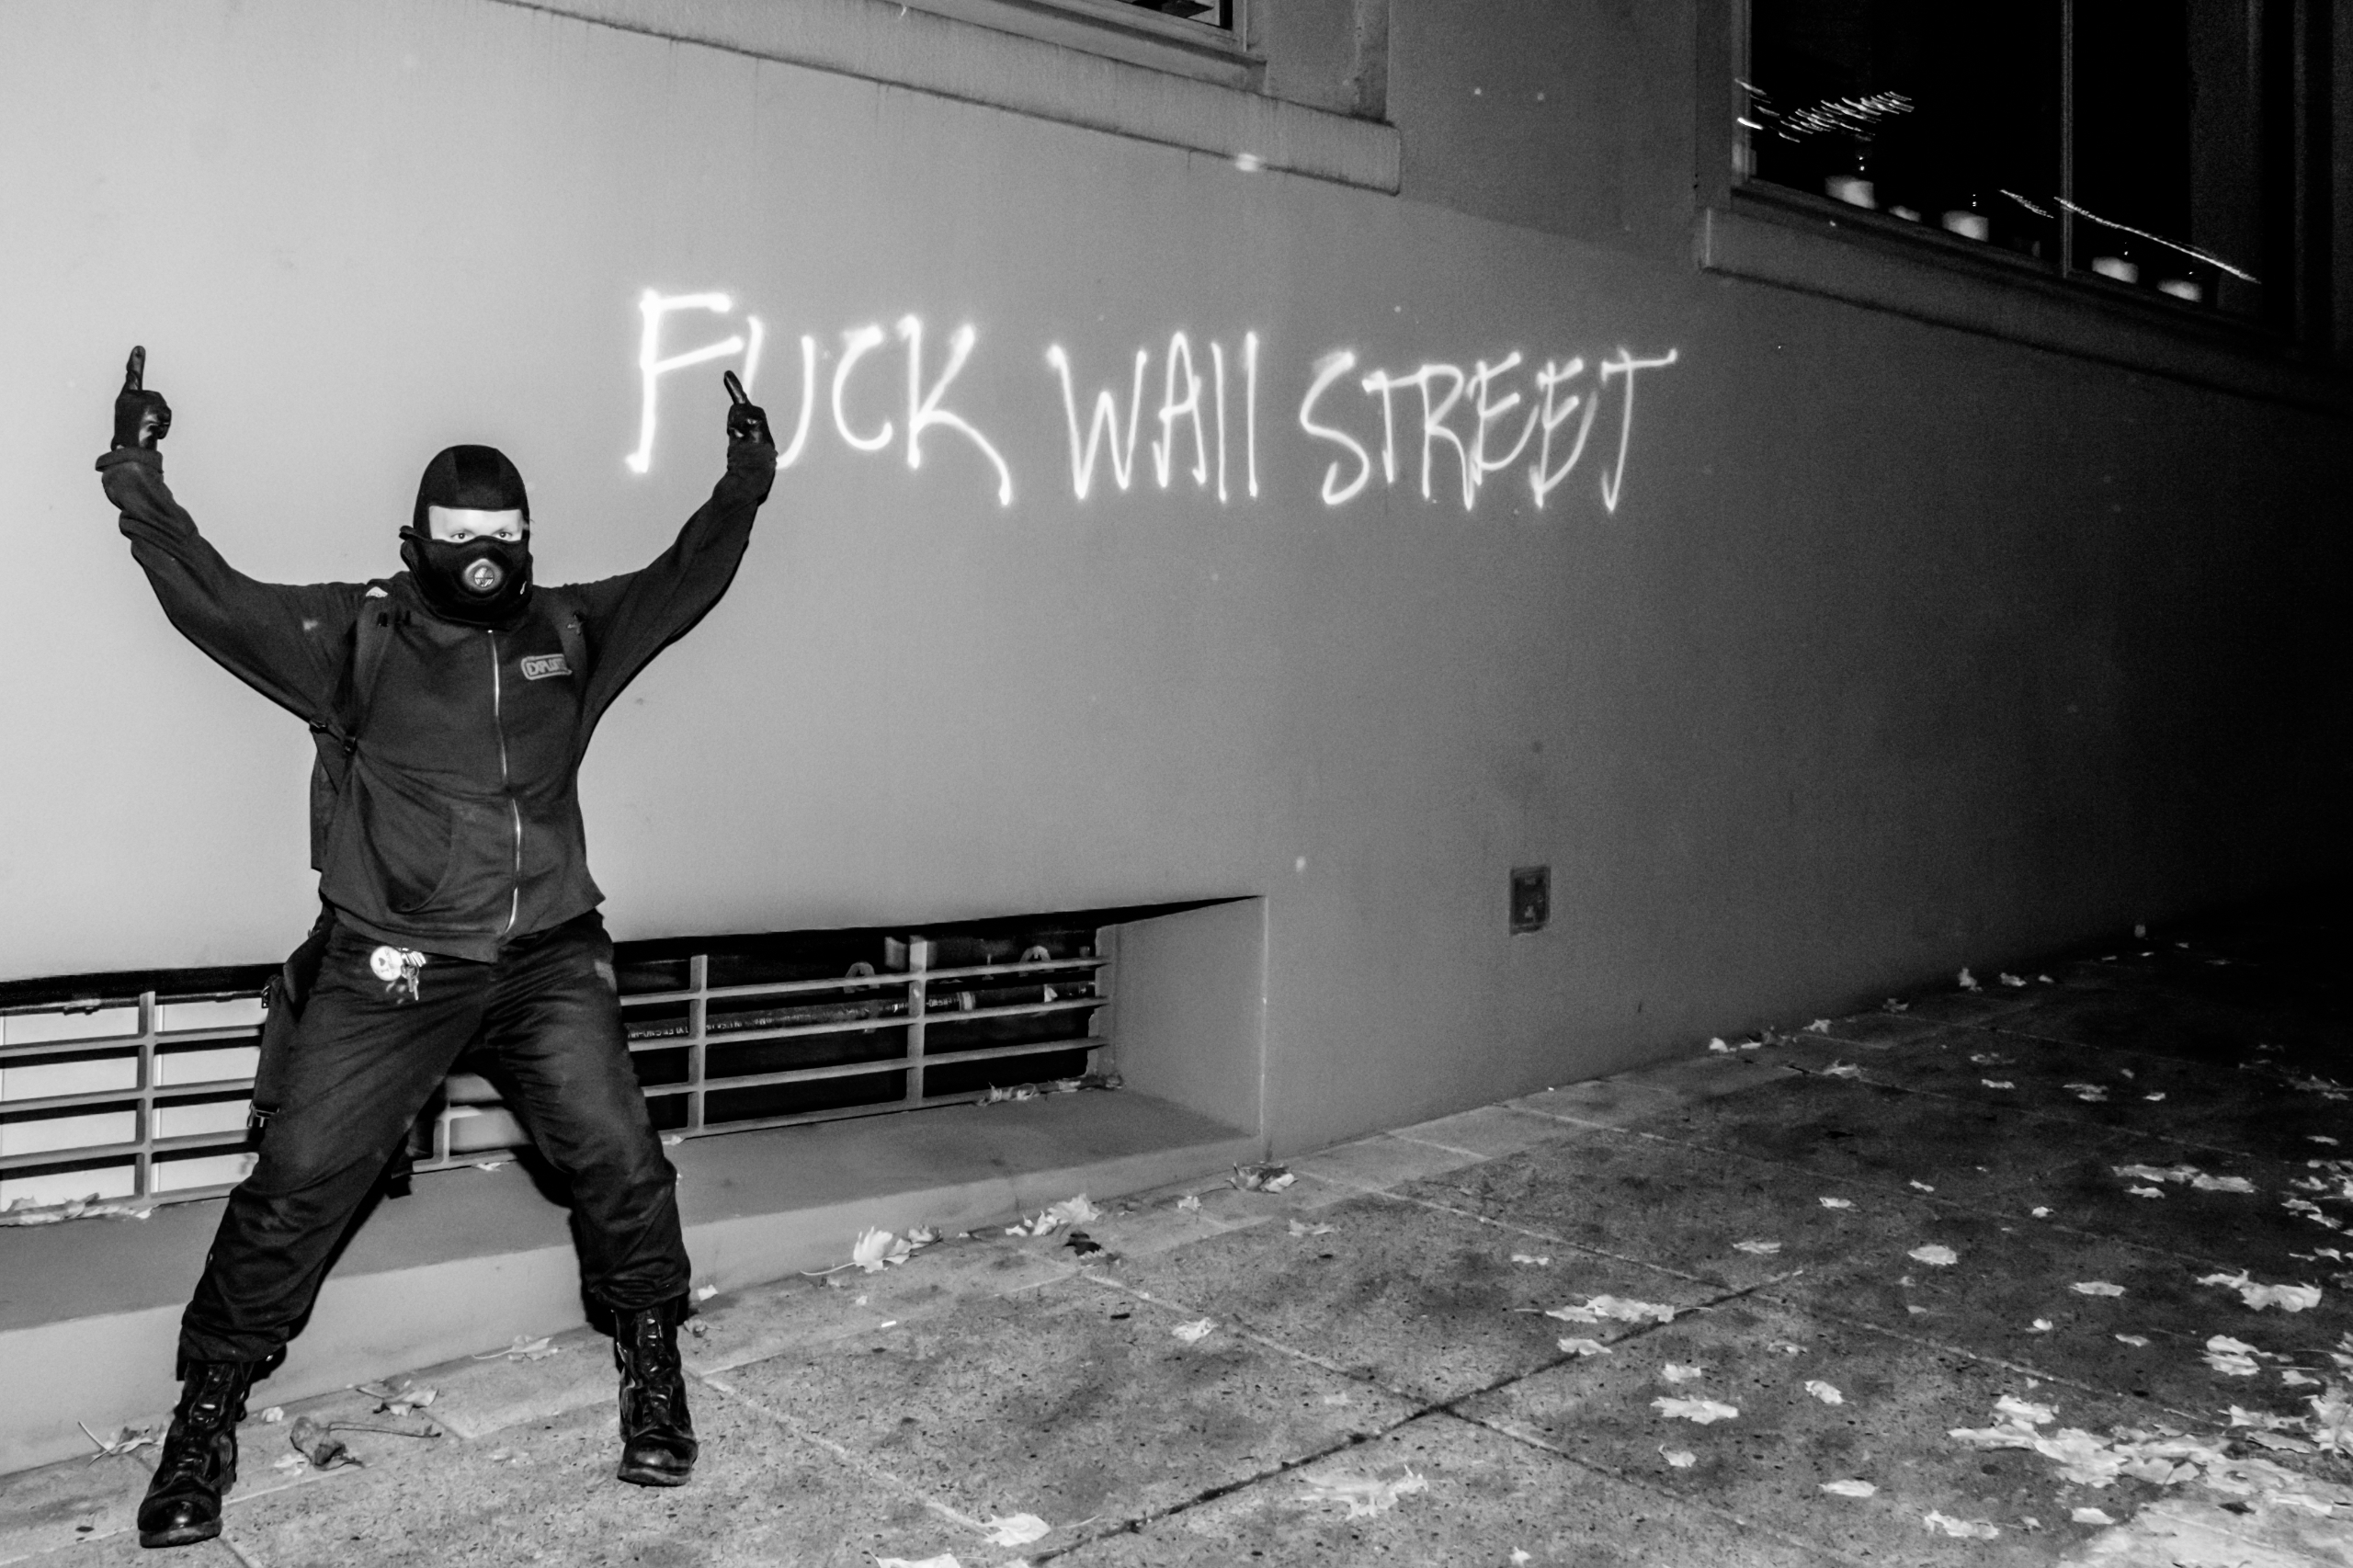 Fuck Wall Street: 11/10/16 day  - picturesofrevolution | ello